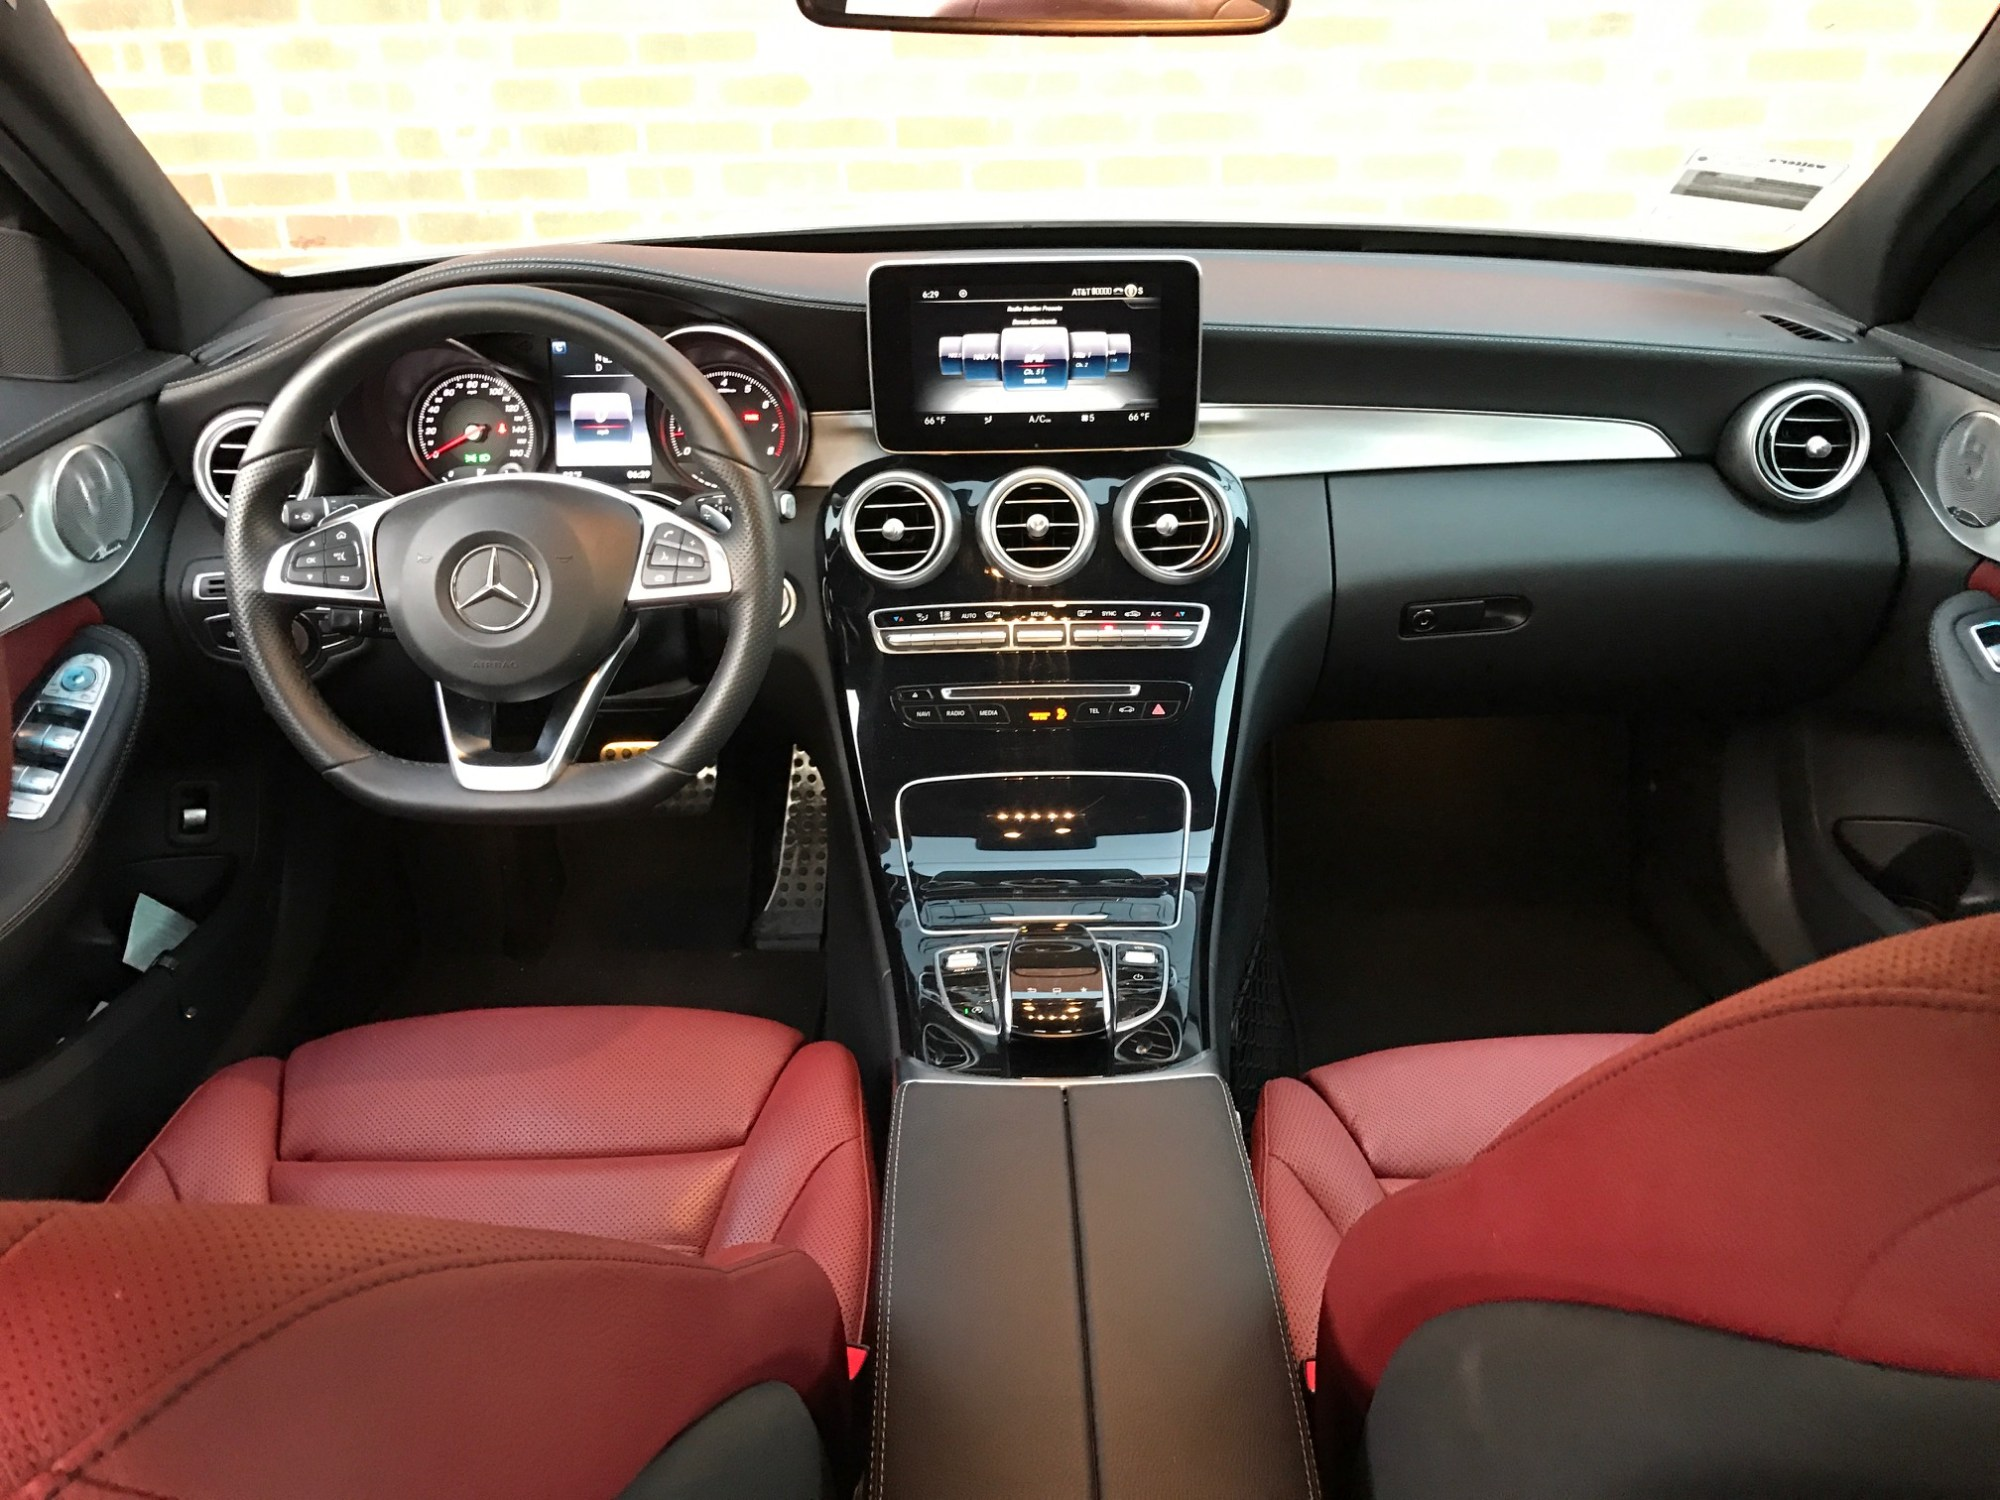 hight resolution of  lease take over 2015 mercedes benz c300 white on red interior la area